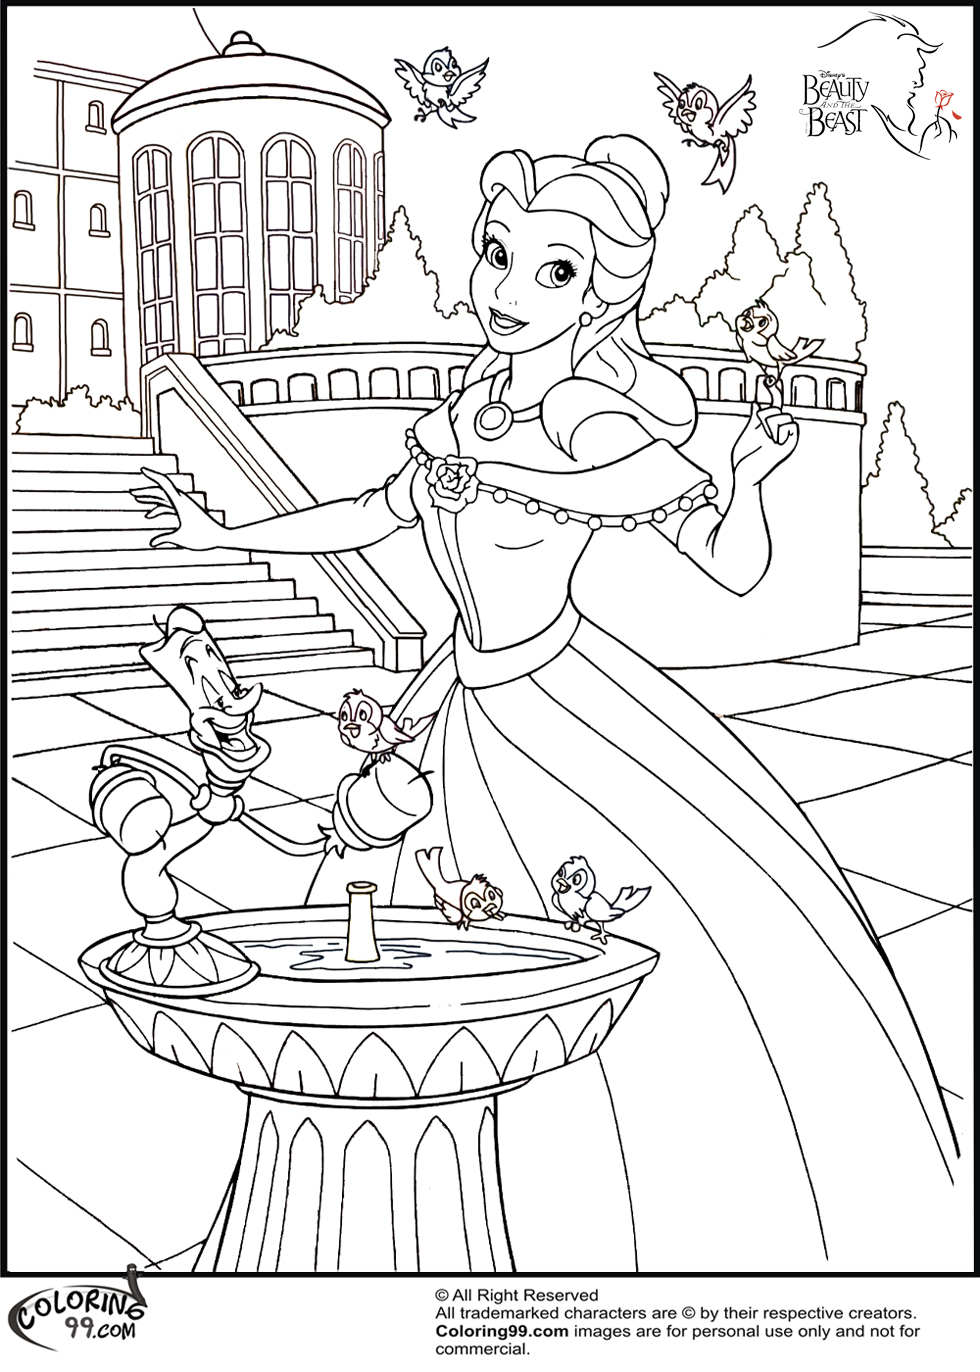 coloring pages disney princess belle - photo#21